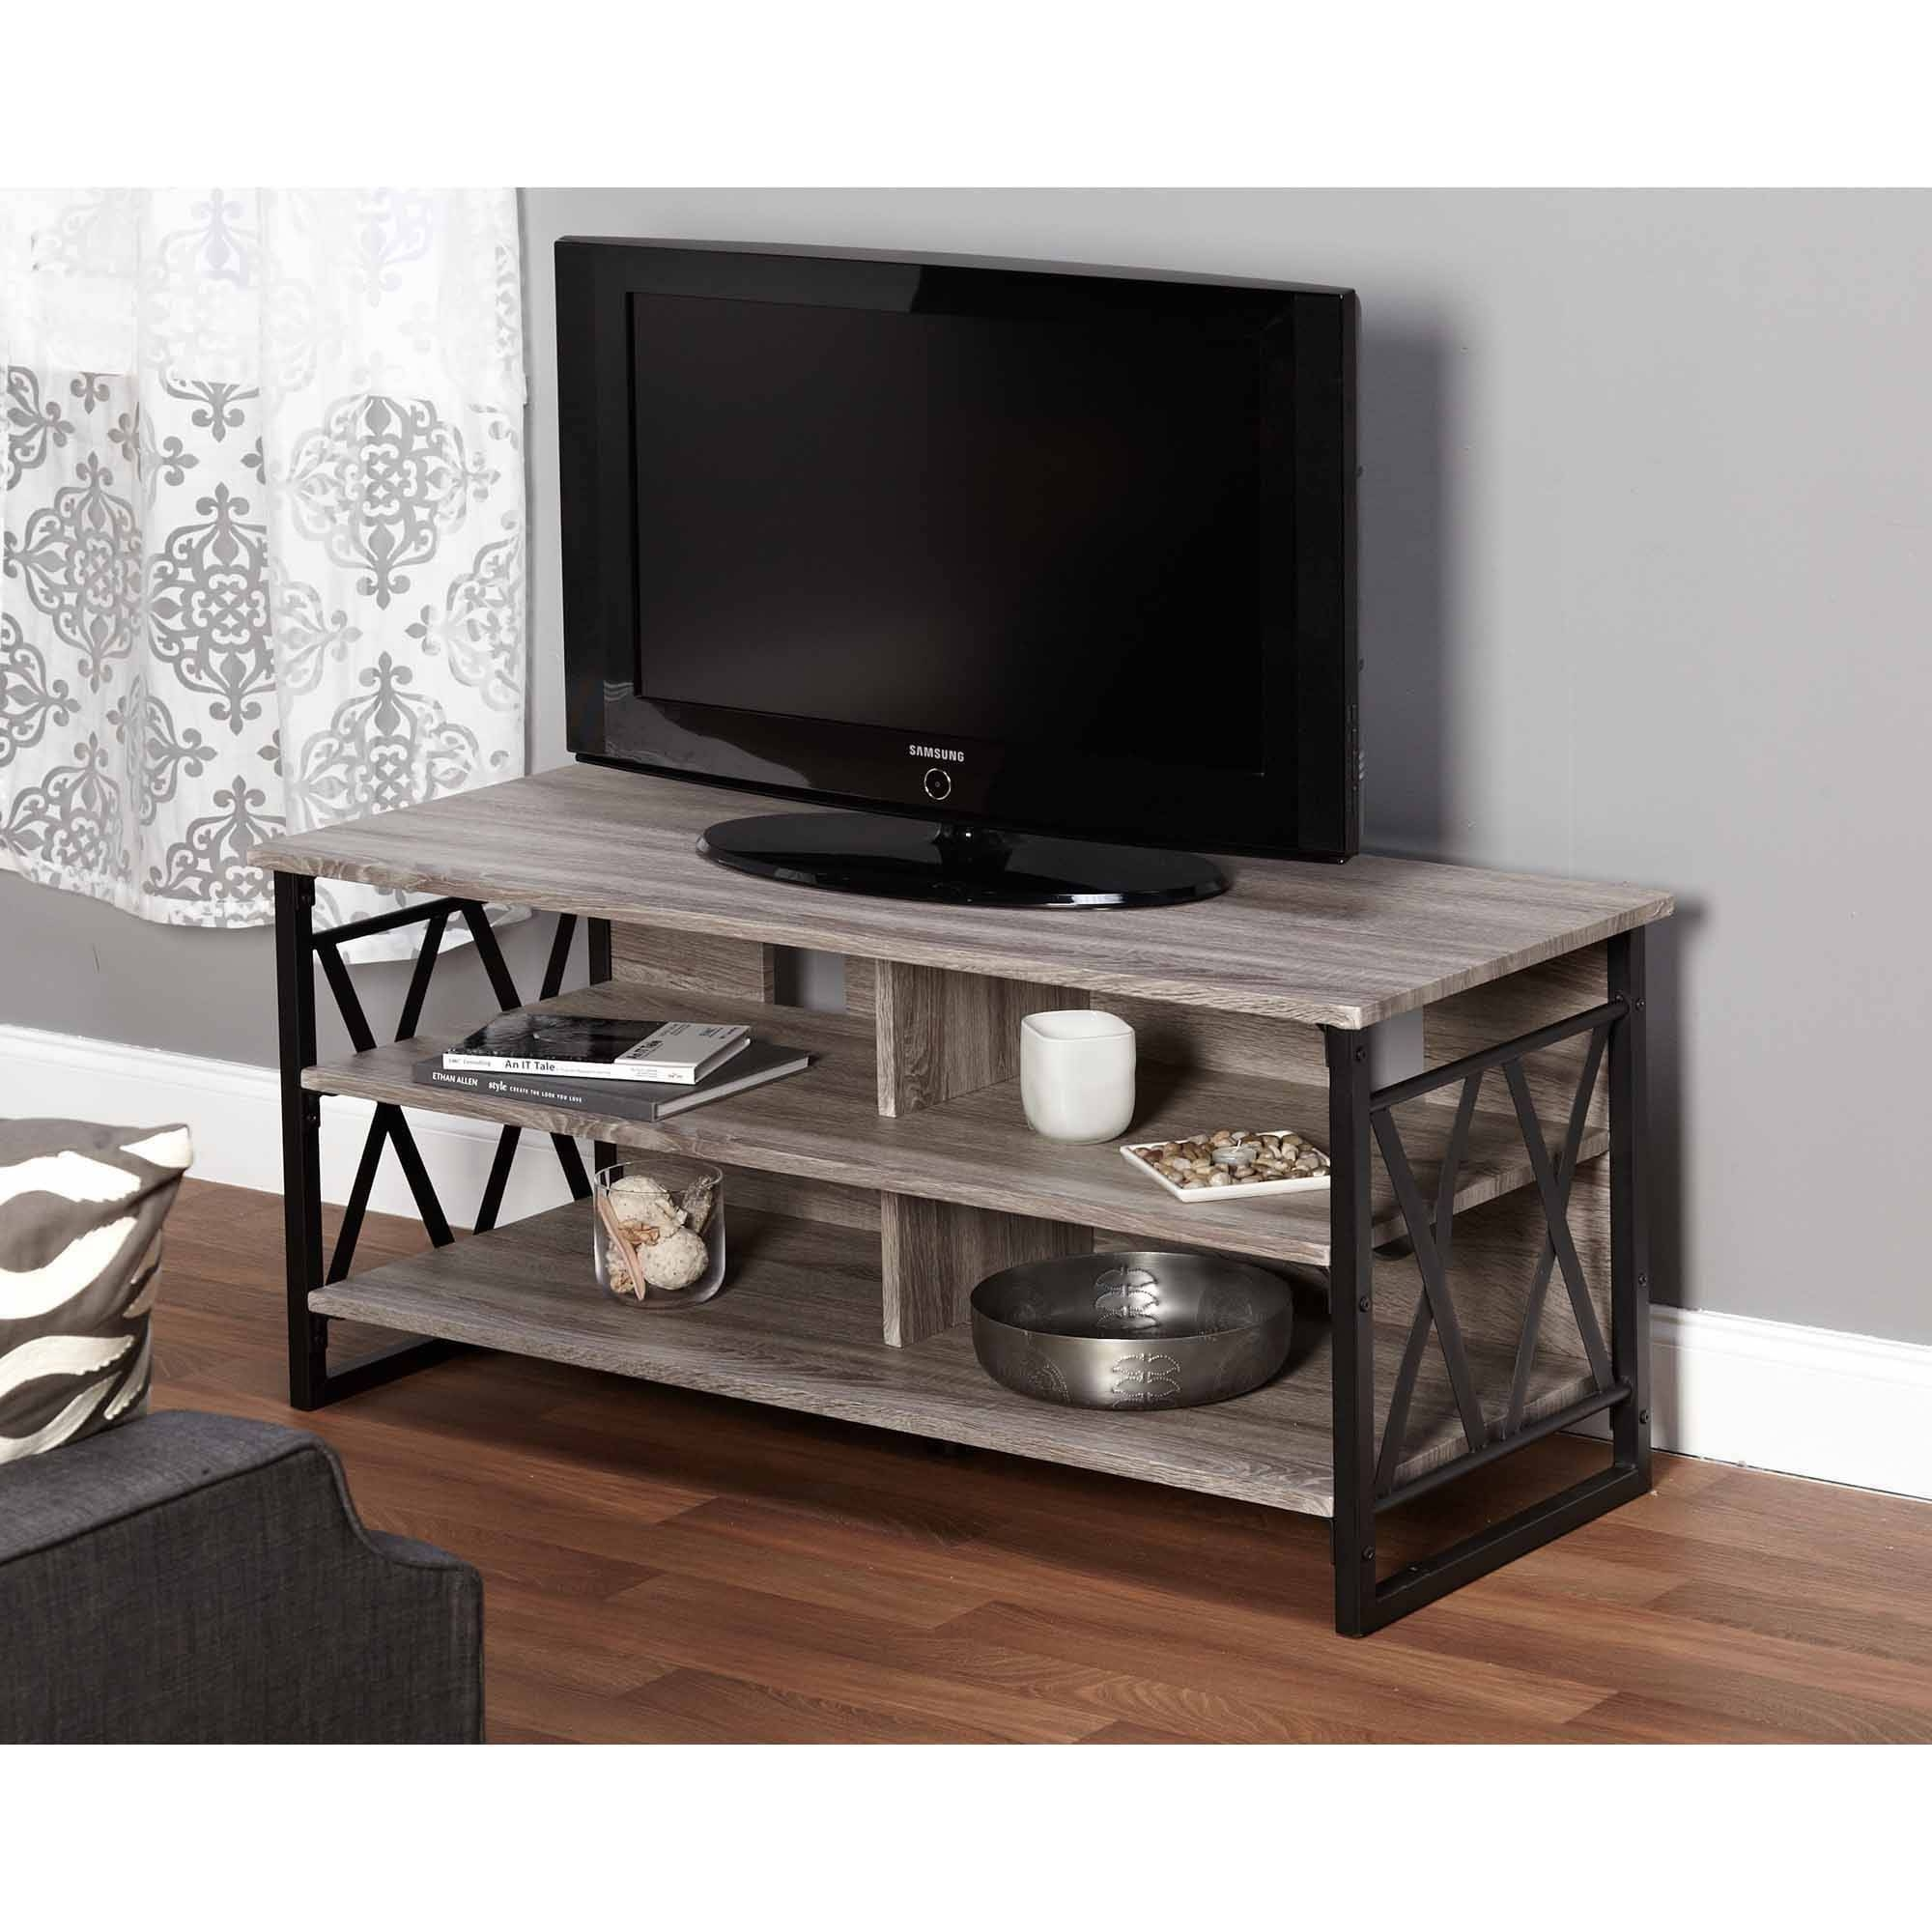 Charming Light Wood Tv Stand 75 For Your Home Decorating Ideas in 24 Inch Wide Tv Stands (Image 5 of 15)